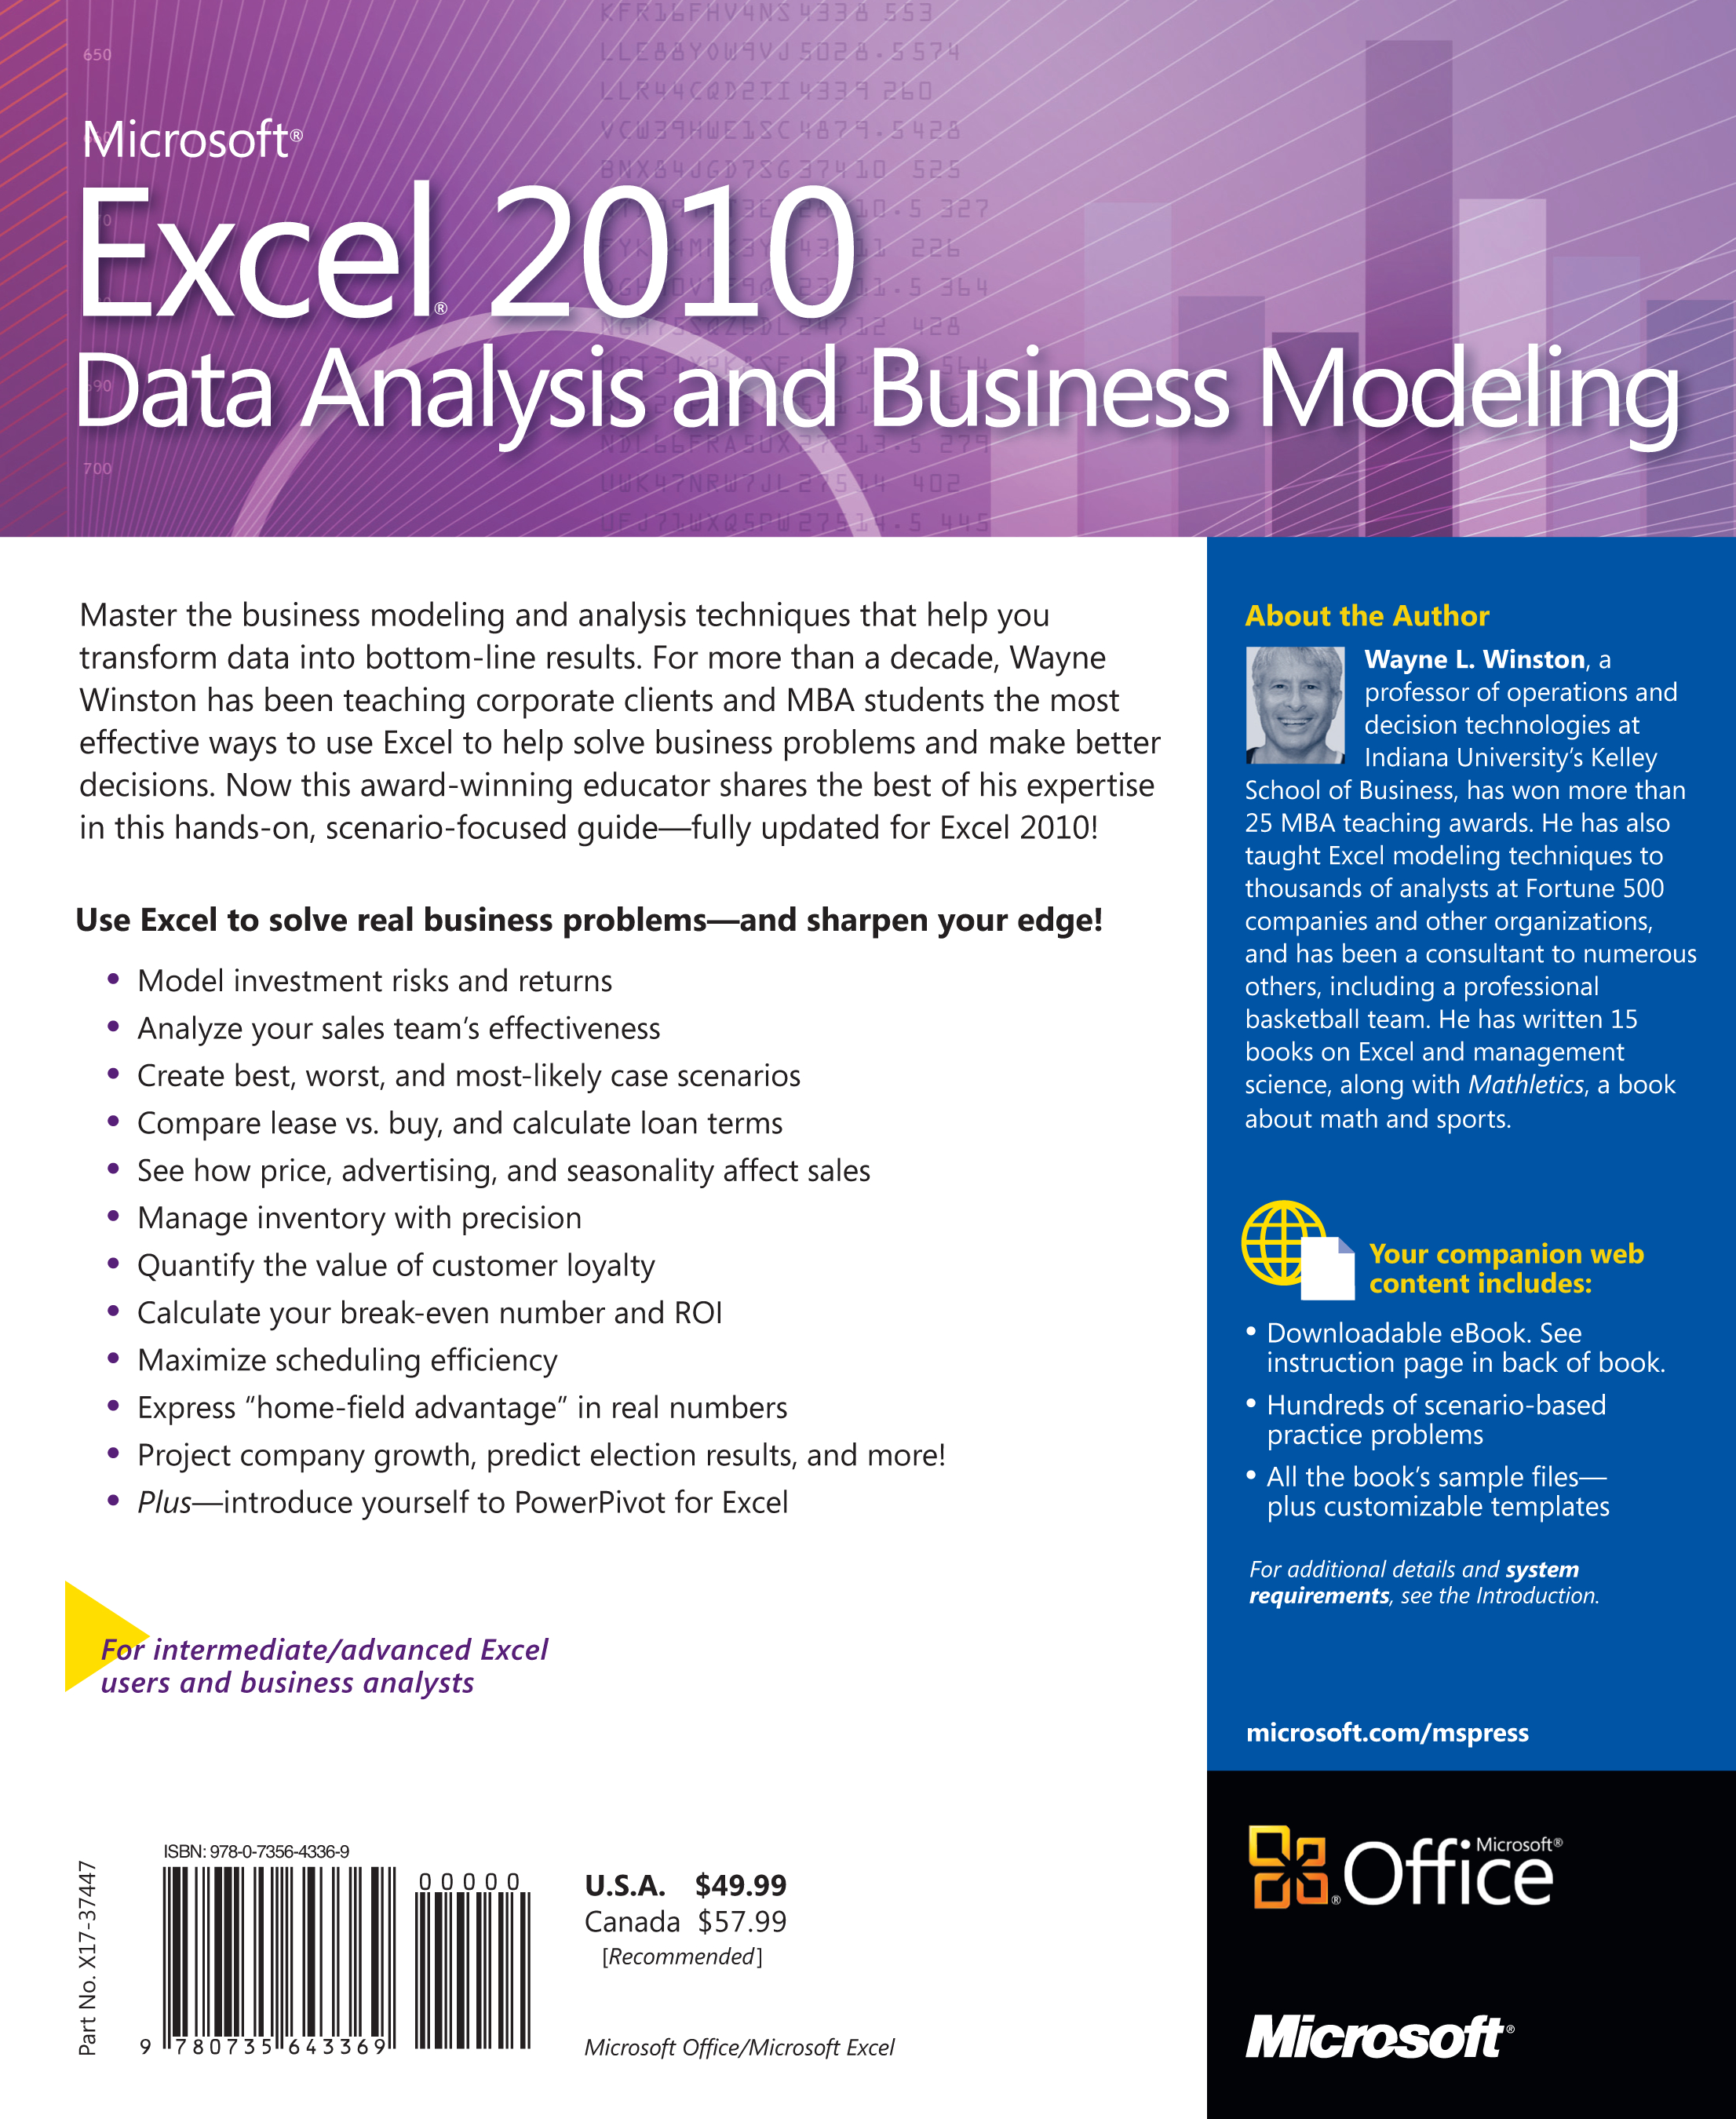 Microsoft excel 2010 data analysis and business modeling what you should know before reading this book fandeluxe Images